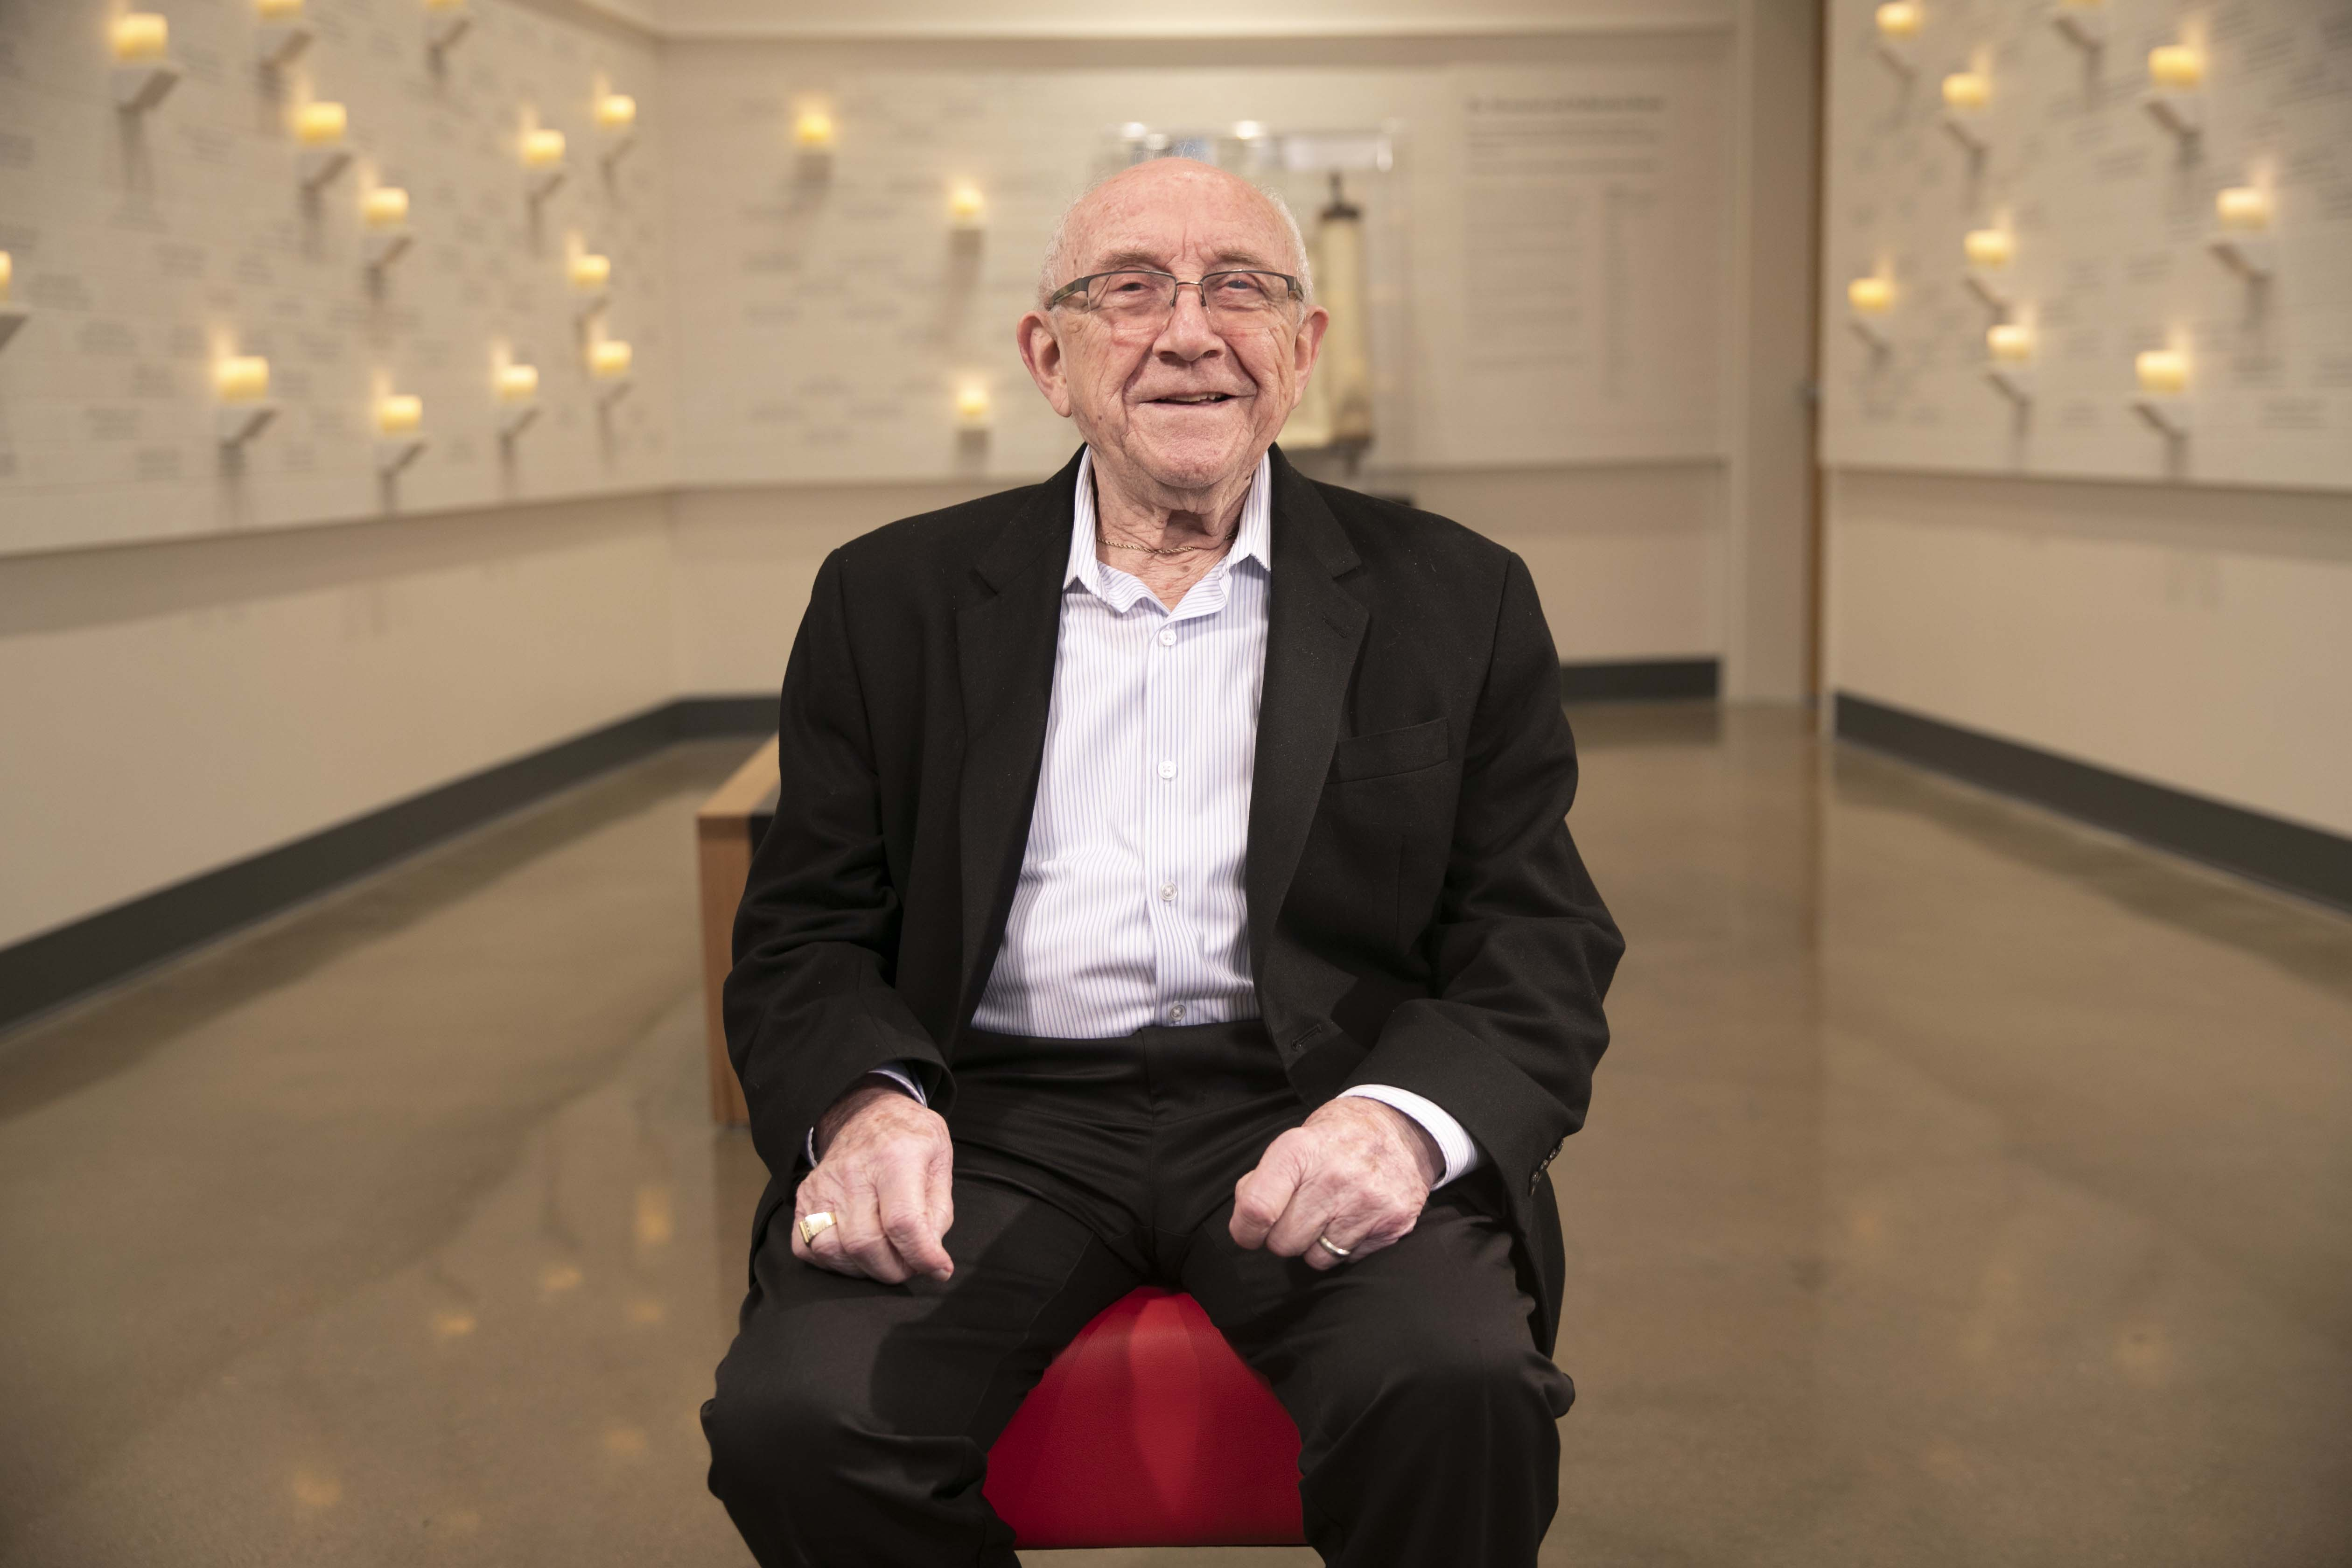 Holocaust survivor, Max Glauben, sits inside the Dallas Holocaust and Human Rights Museum January 22, 2020.